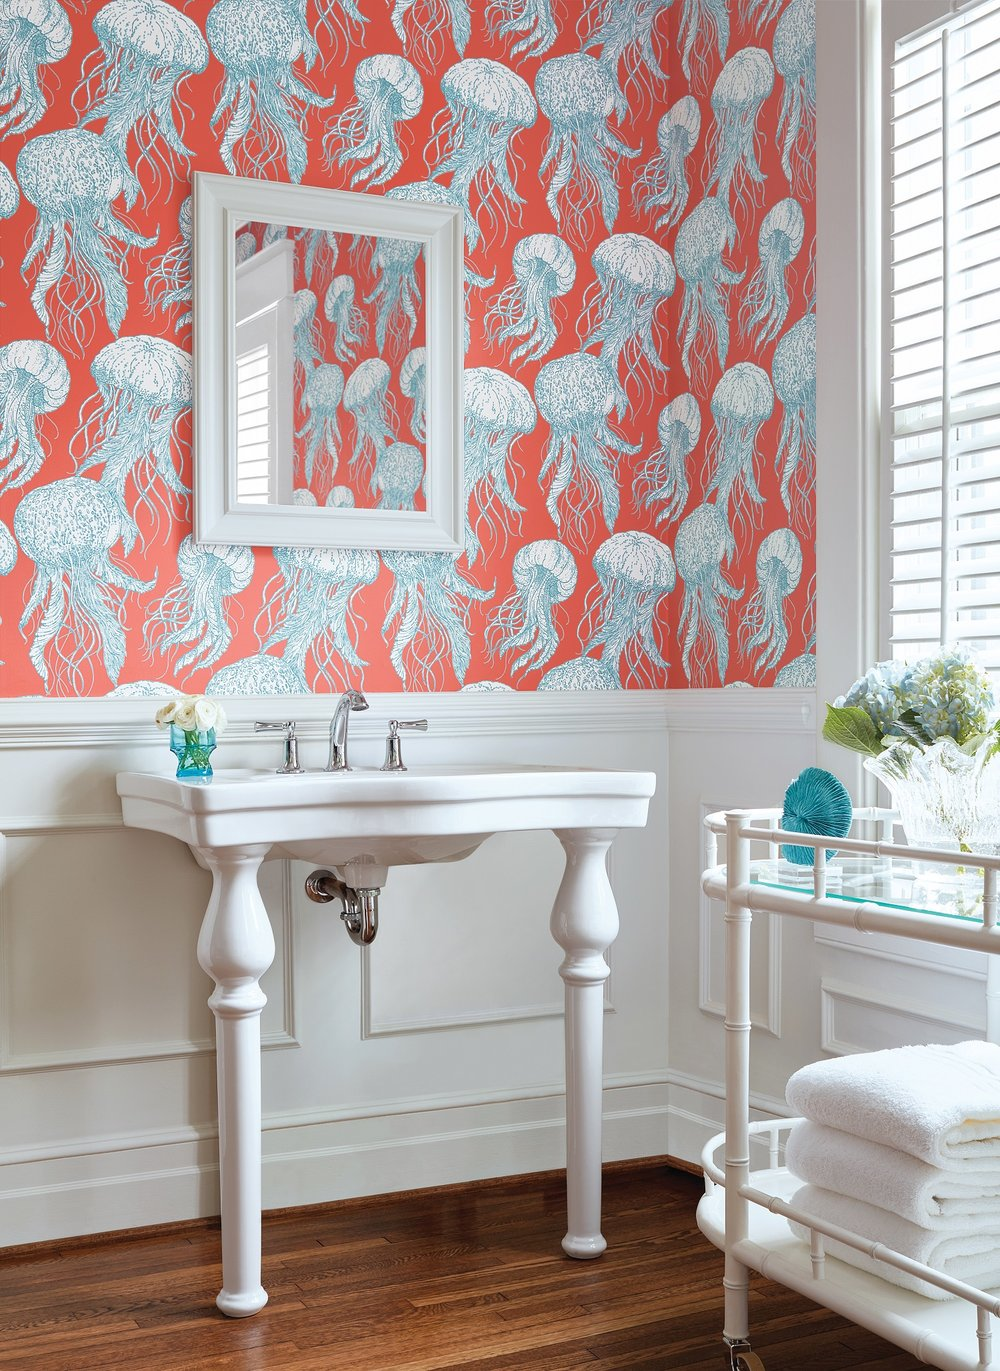 Have some fun this spring with Jelly Fish Bloom wall covering from Thibaut Design's Summer House Collection. Photo courtesy of Thibaut Design.